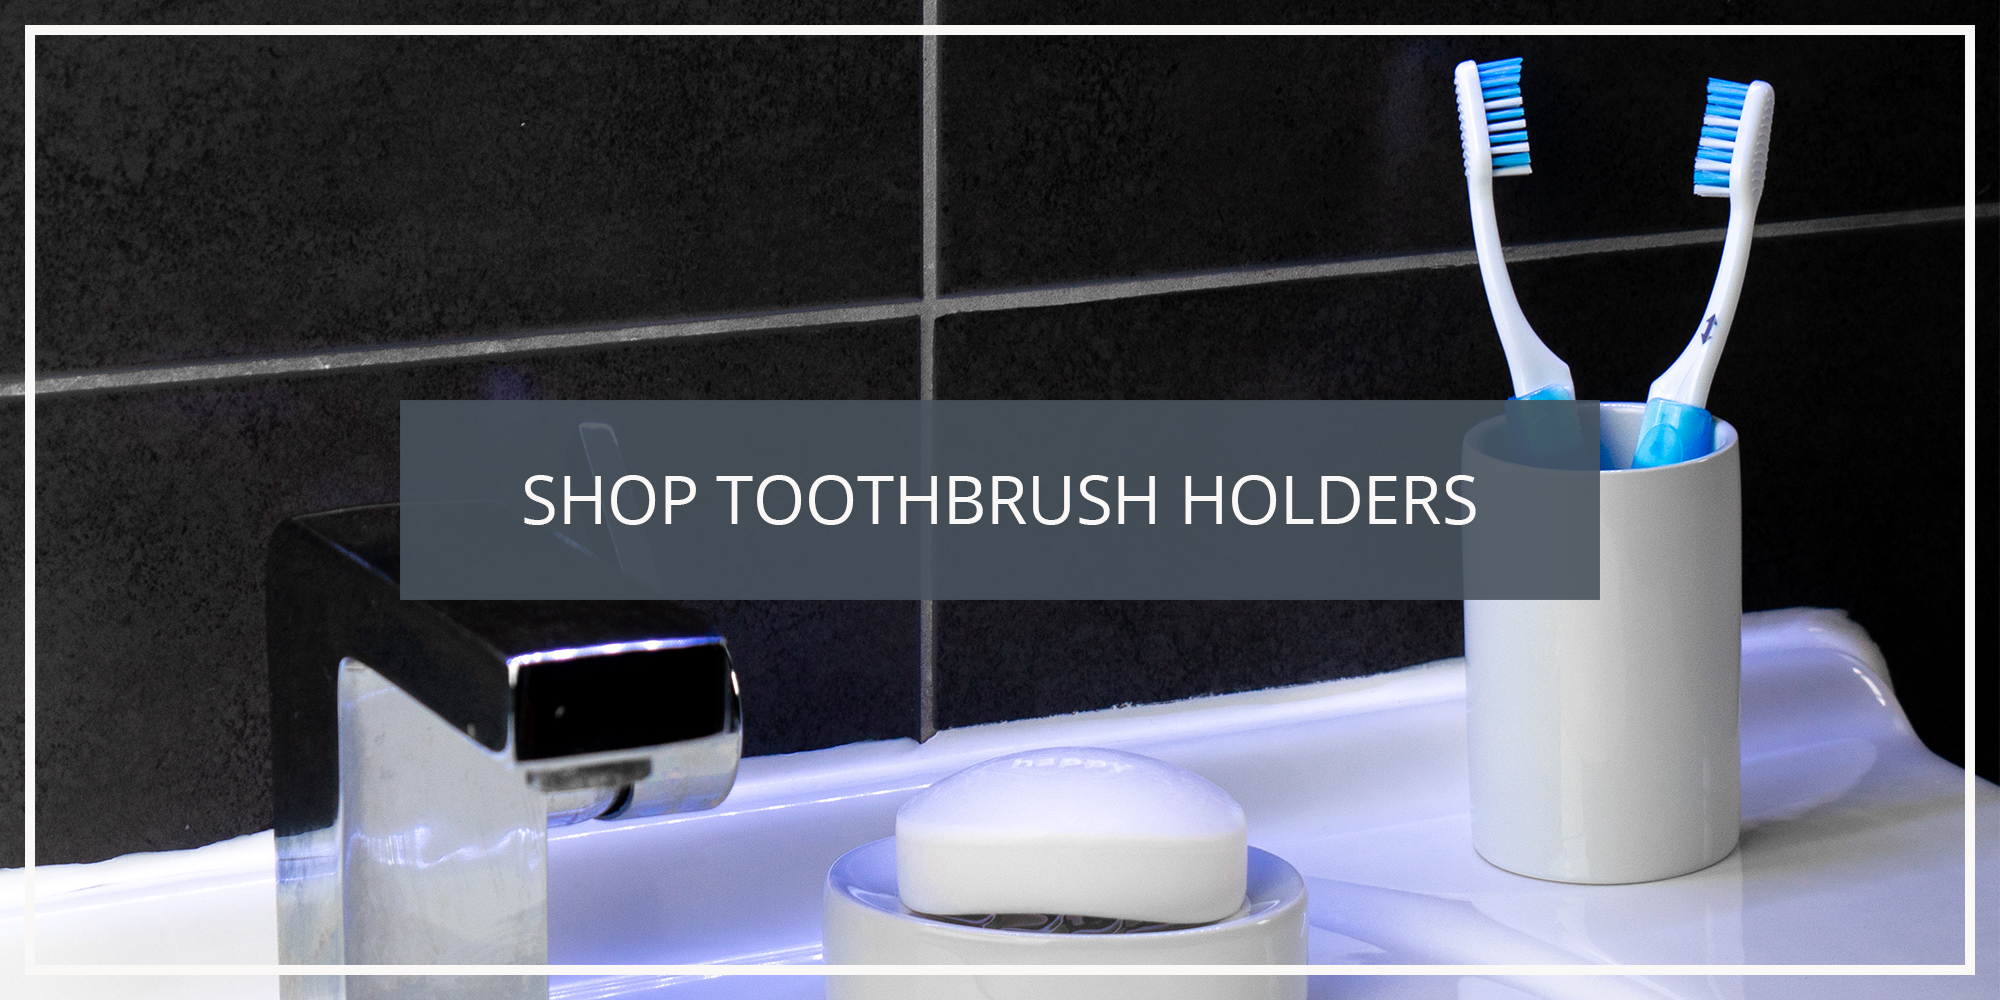 Shop the Harbour Housewares Collection of Toothbrush Holders